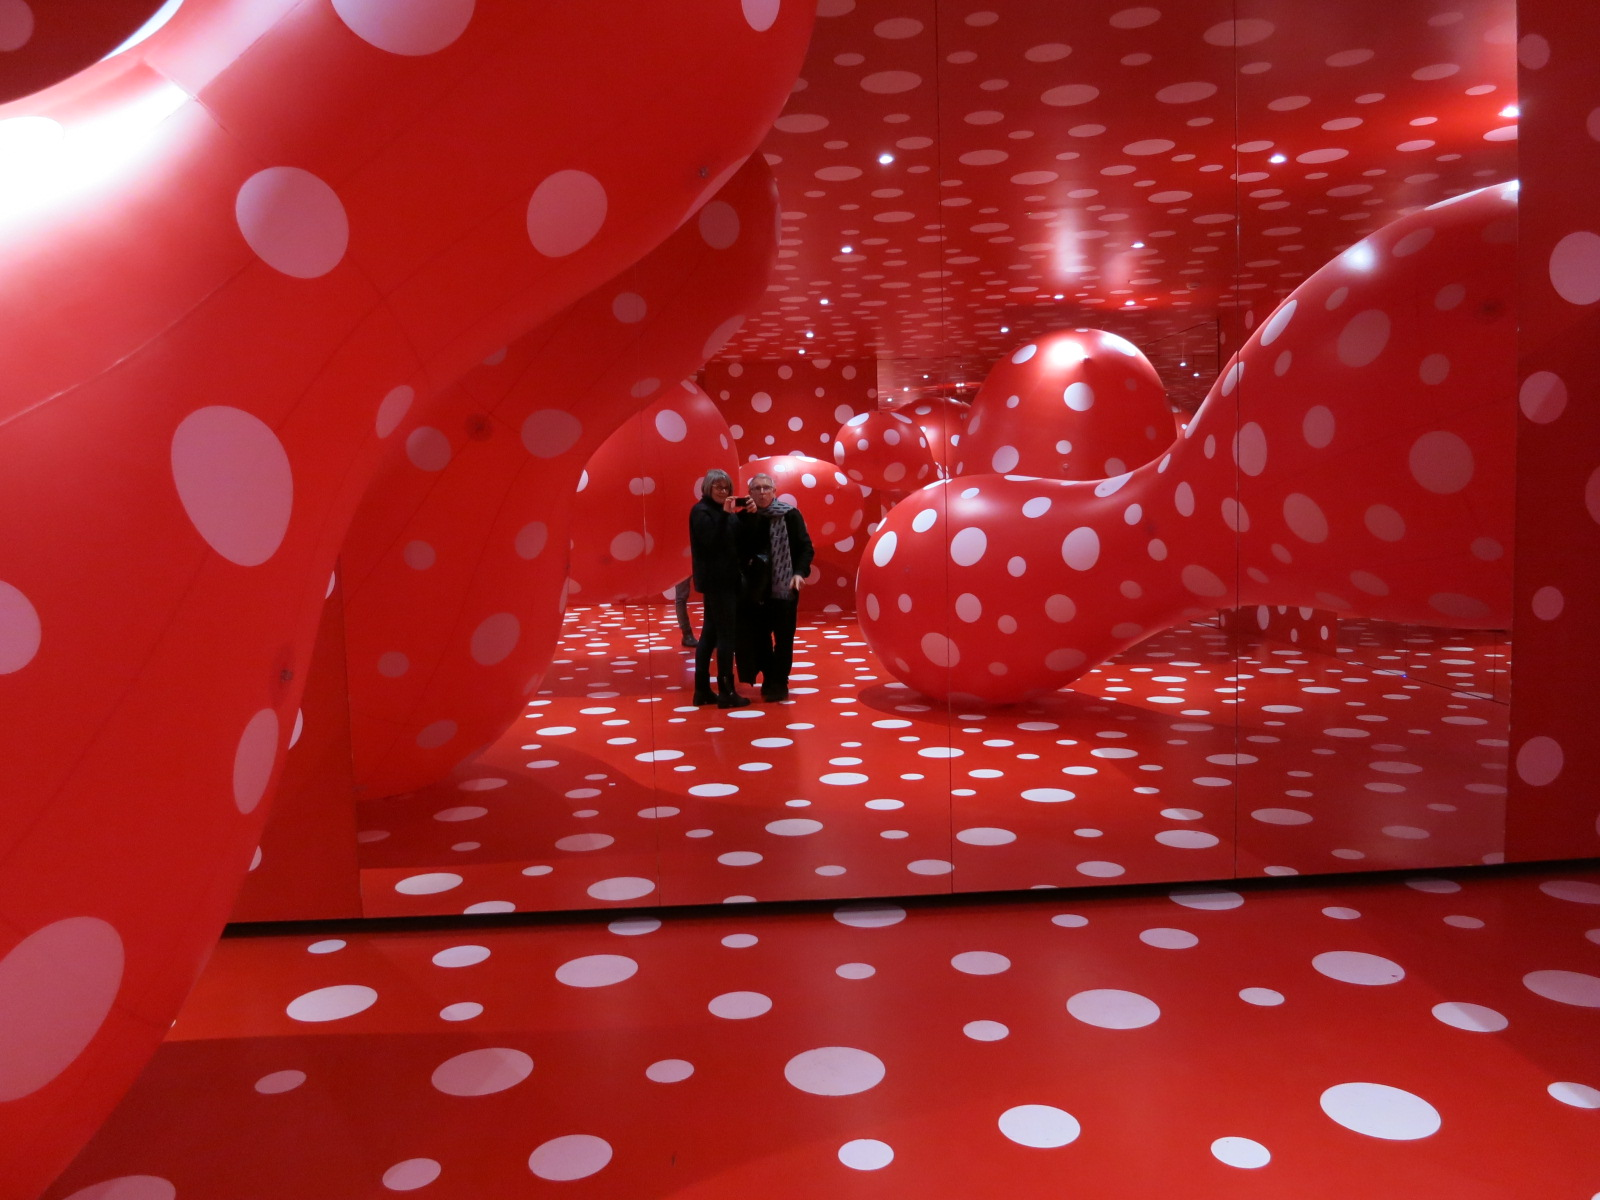 Yayoi Kusama's 1980s works in the In Infinity Retrospective at the Louisiana Museum of Modern Art, Denmark 2015.